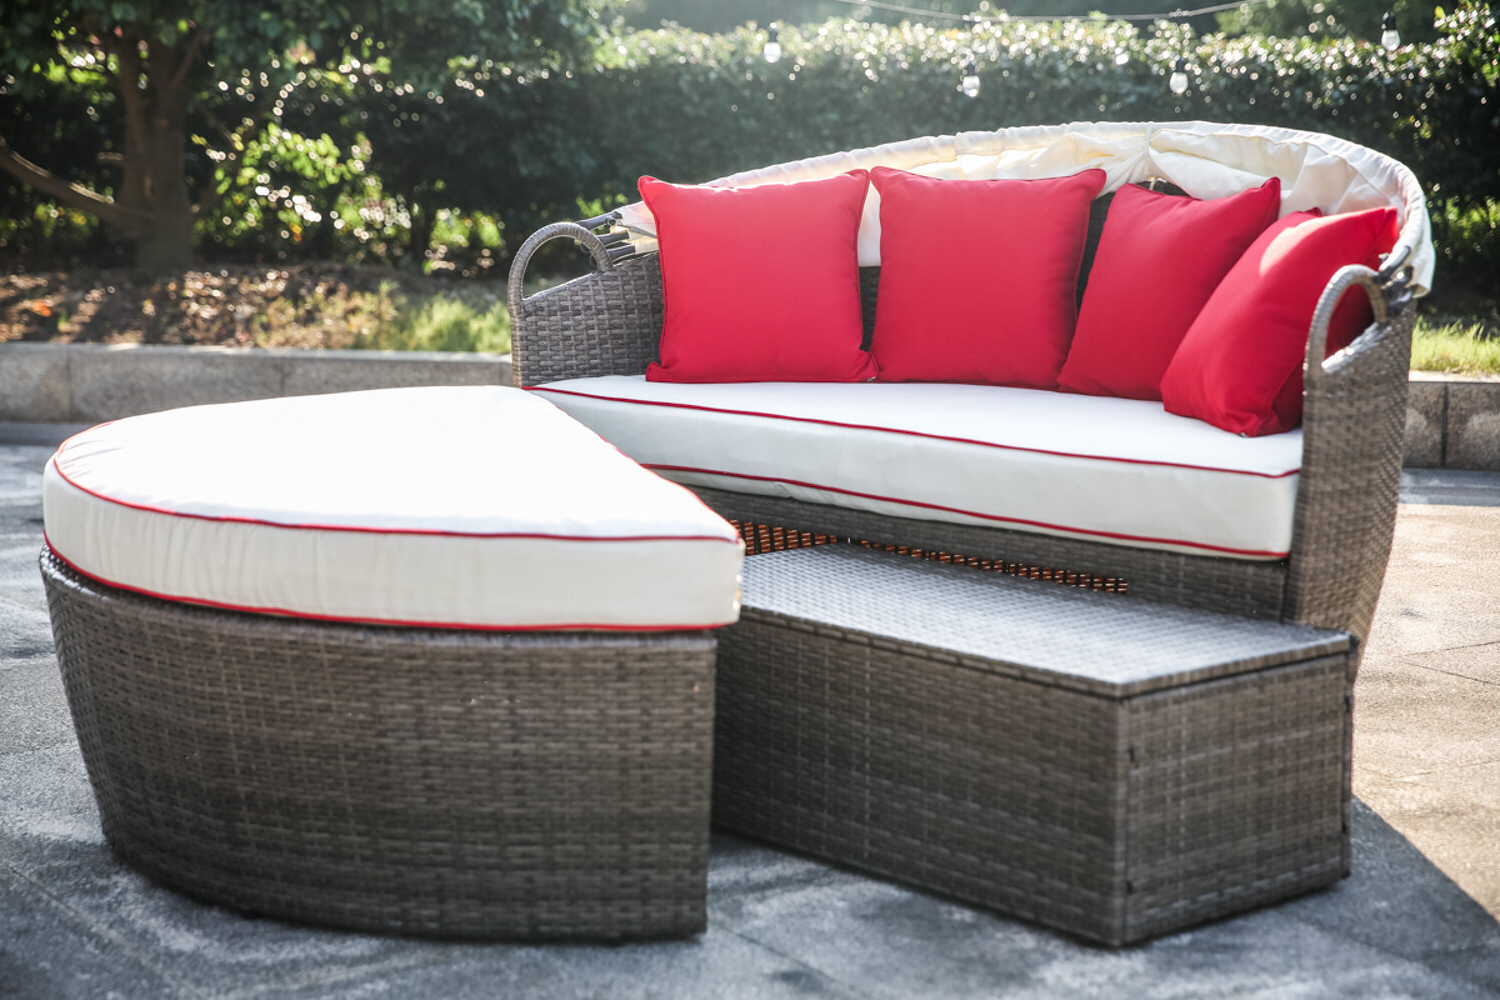 Fansler Patio Daybed With Cushions Within Most Up To Date Lavina Outdoor Patio Daybeds With Cushions (View 4 of 20)